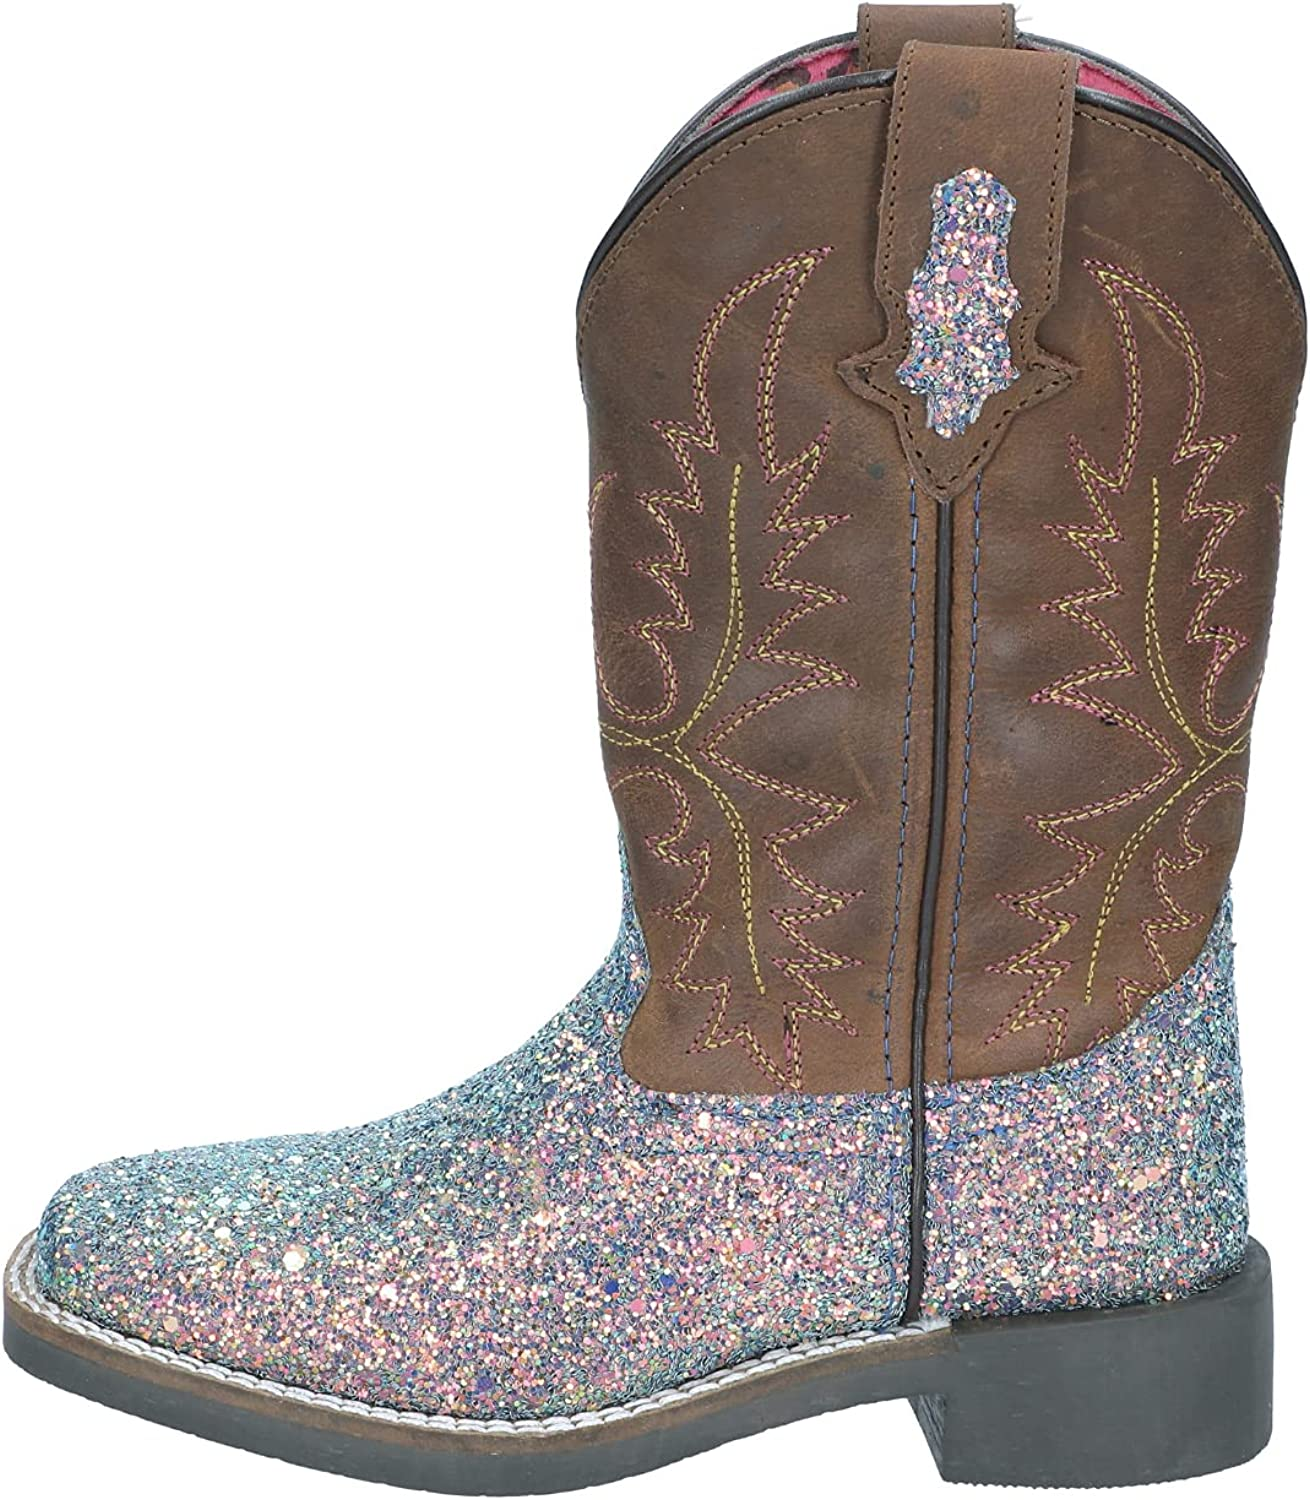 Smoky Mountain Boots | Ariel Series | Youth Western Boot | Square Toe Leather | Glitter Foot | TPR Sole & Block Heel | Leather Shaft & Tricot Lining | Man-Made Trim